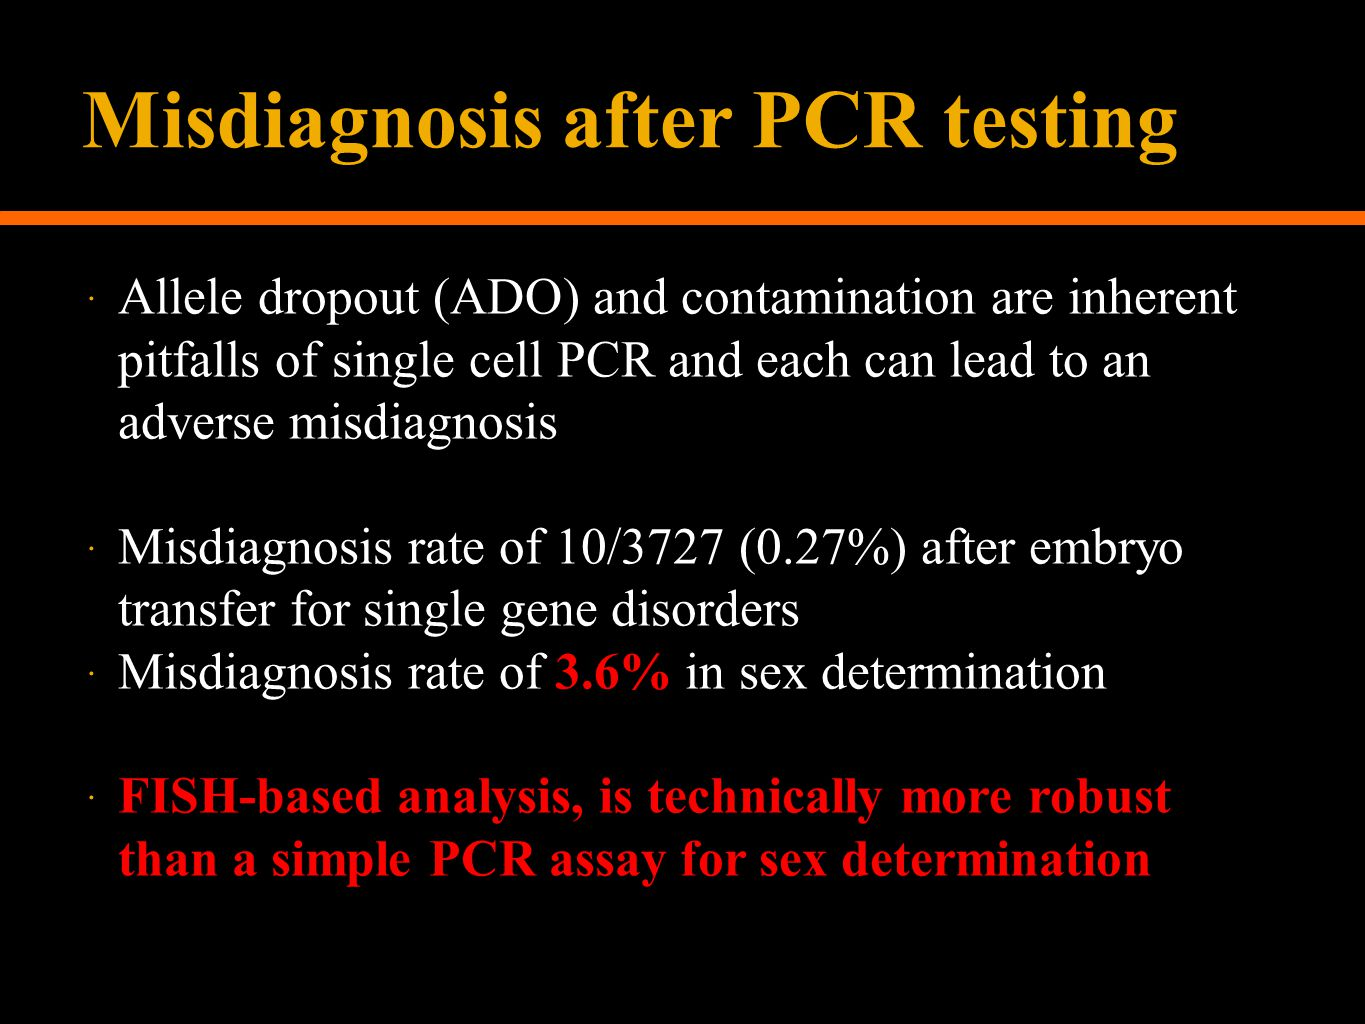 Misdiagnosis after PCR testing  Allele dropout (ADO) and contamination are inherent pitfalls of single cell PCR and each can lead to an adverse misdiagnosis  Misdiagnosis rate of 10/3727 (0.27%) after embryo transfer for single gene disorders  Misdiagnosis rate of 3.6% in sex determination  FISH-based analysis, is technically more robust than a simple PCR assay for sex determination